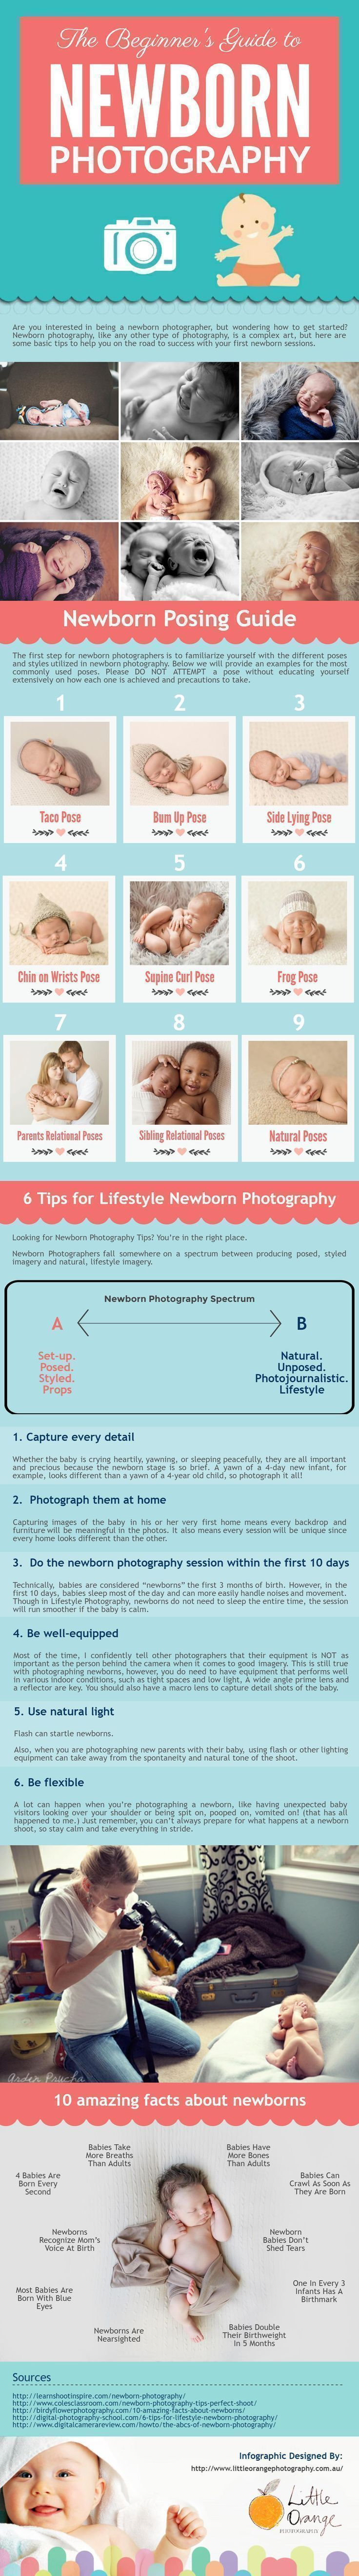 If you're new to photography, check out this infographic for newborn photography ideas, the beginner's guide to newborn photography. The first step for new born photographers is to familiarize yourself with the different poses and styles utilized in newborn photography. Also, tips for lifestyle newborn photography, facts about newborns… etc. #newbornphotography